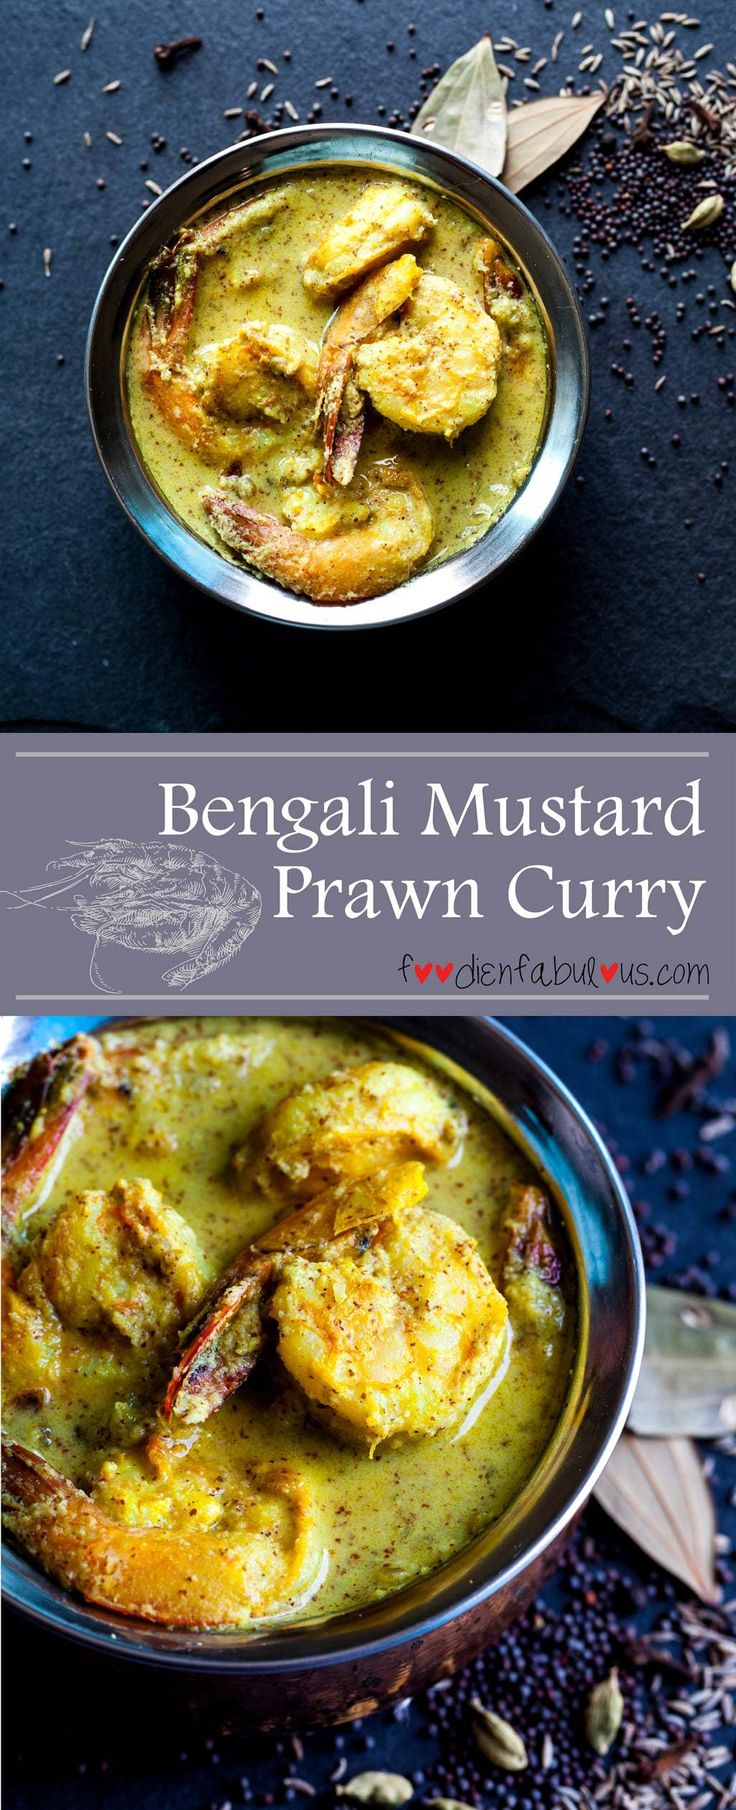 Bengali Mustard Prawn Curry recipe (Chingri Malaikari) served with a side of steamed basmati rice that would make a complete seafood meal.